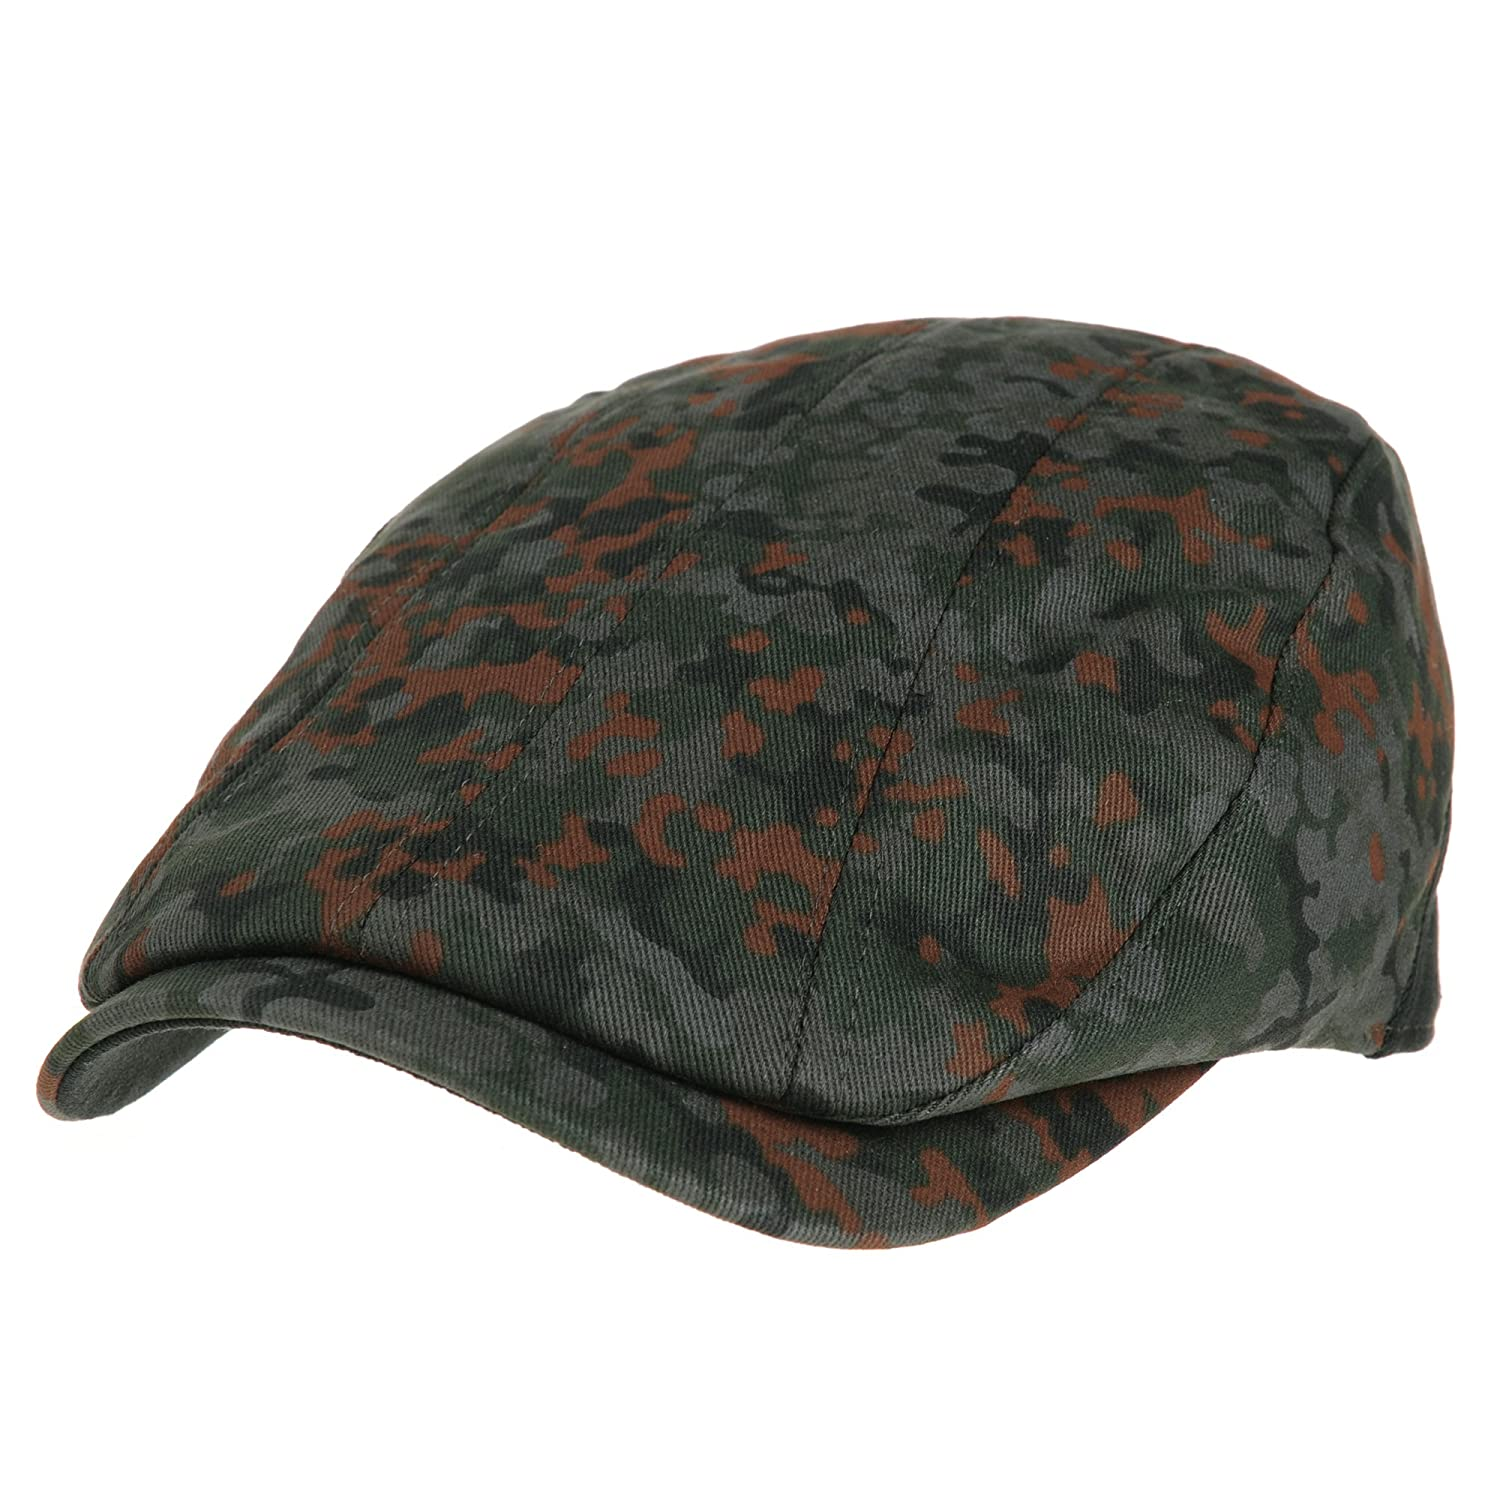 WITHMOONS Coppola Cappello Irish Gatsby Mens Flat Cap Camouflage Vertical Stitch Ivy Hat LD3438 LD3438Green